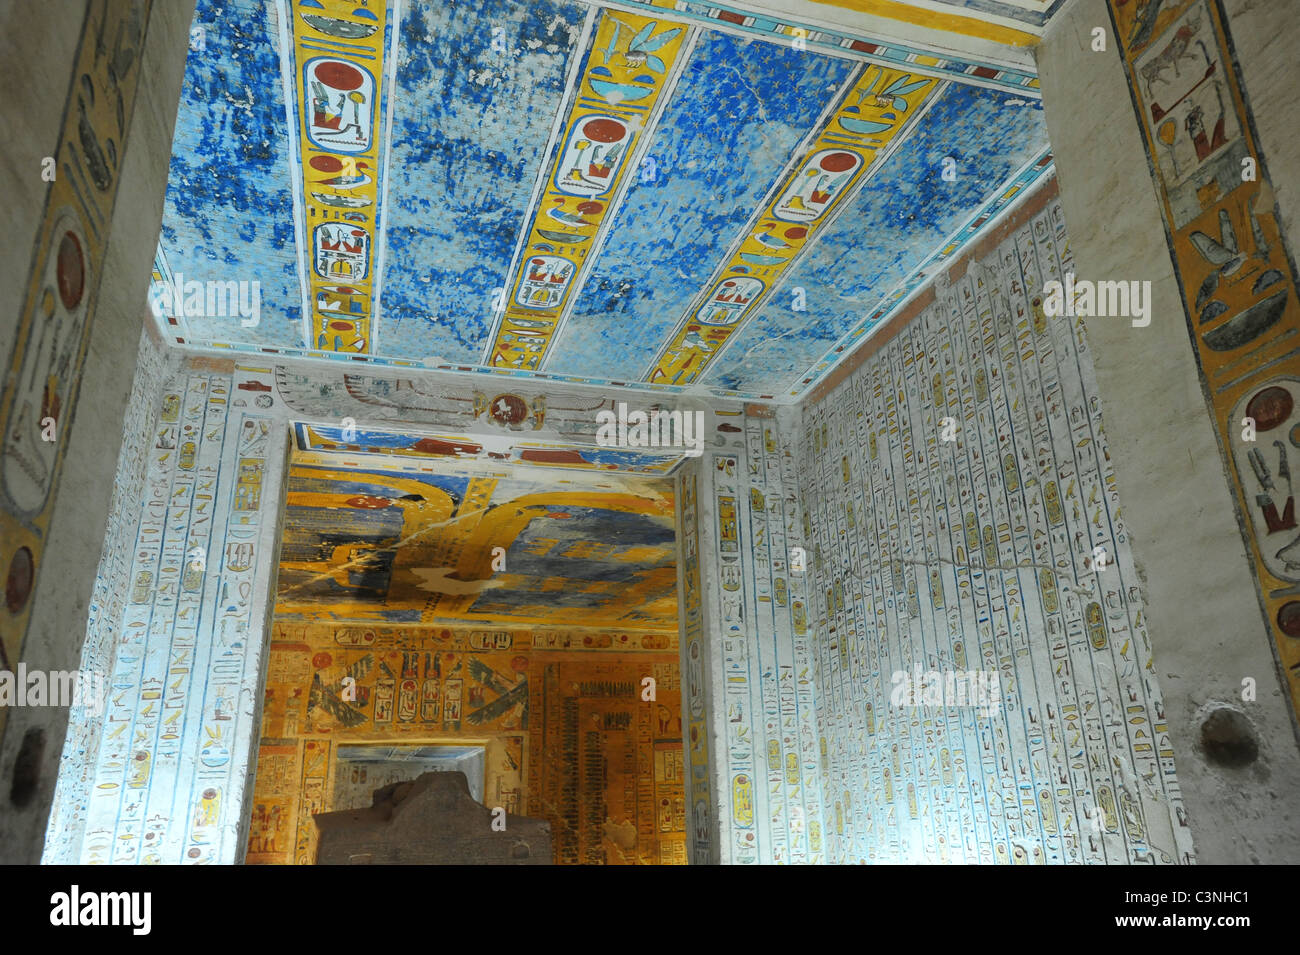 africa-middle-east-egypt-egyptian-tomb-of-ramses-iv-valley-of-the-C3NHC1.jpg